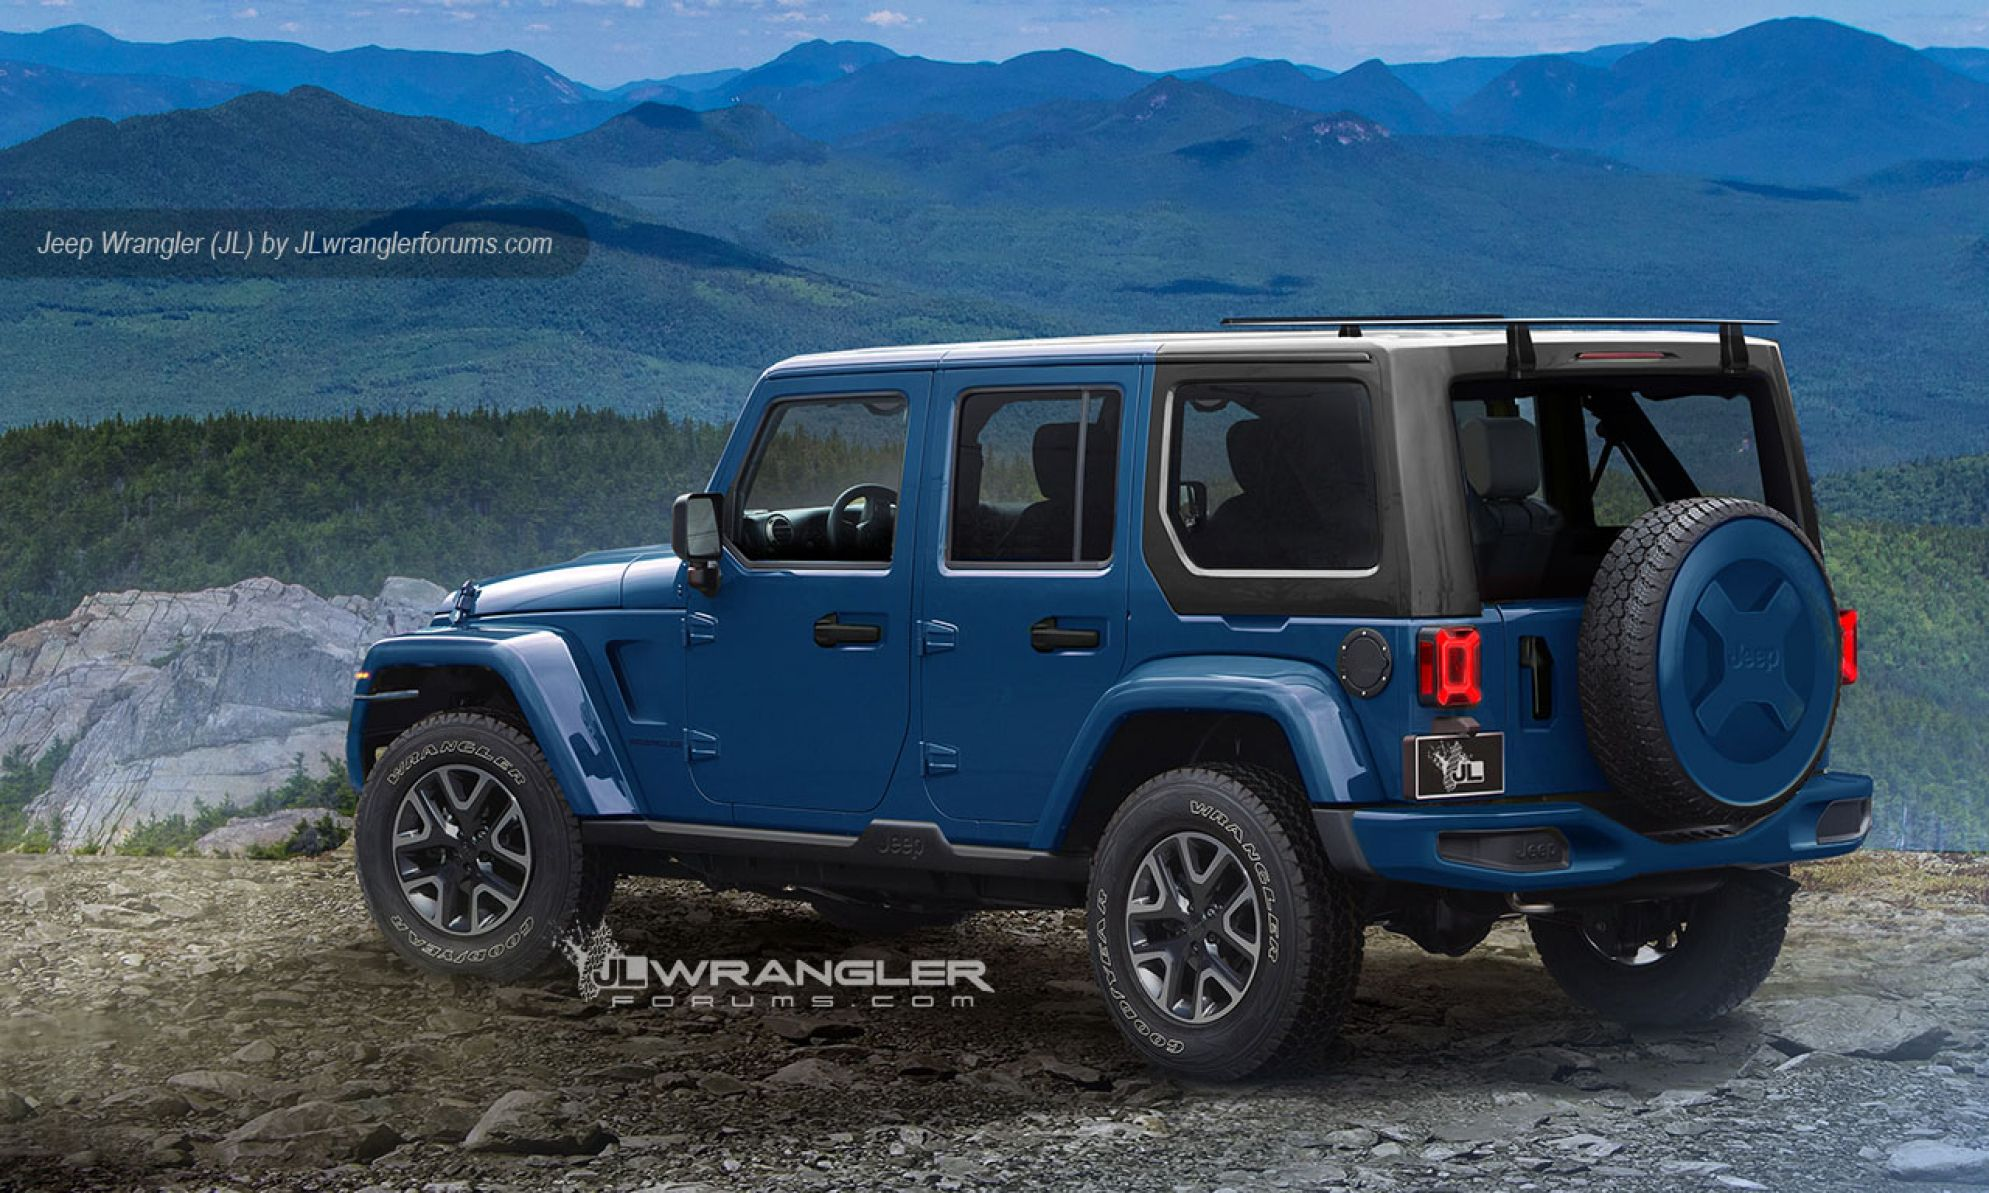 2018 Jeep Wrangler Purple Desktop Wallpaper Jeep Wrangler